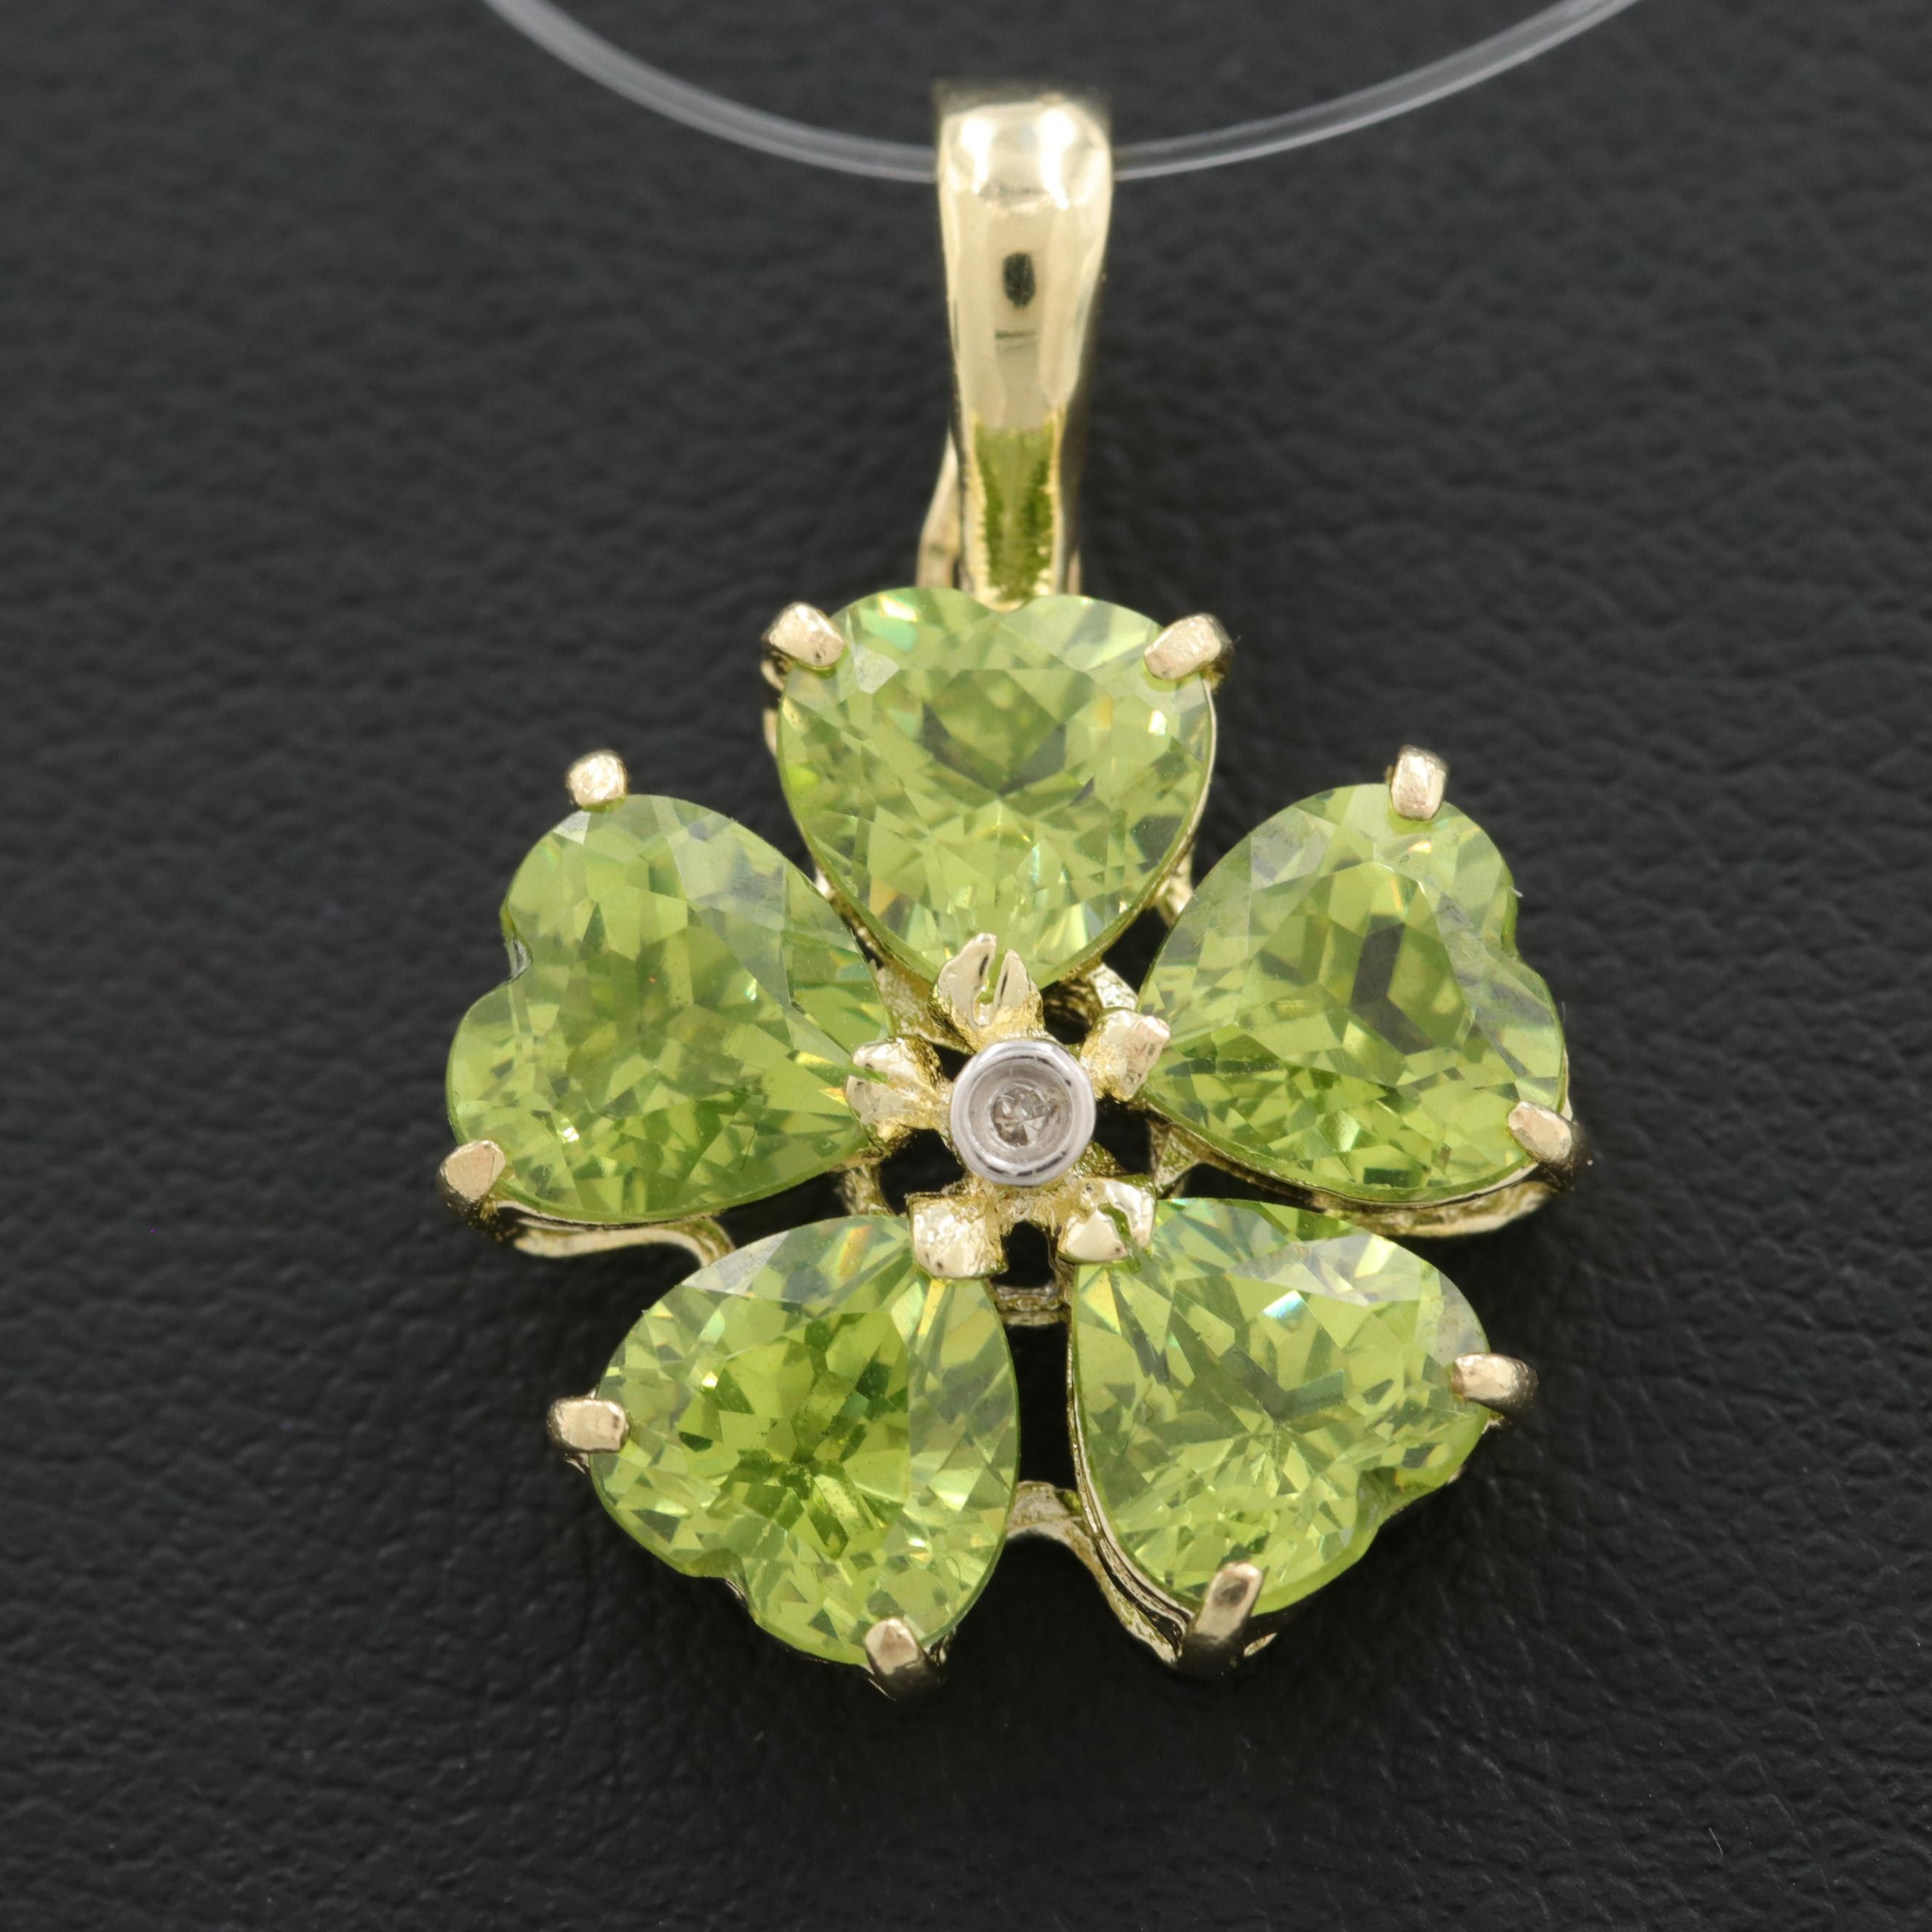 14K Yellow Gold Diamond and Green Cubic Zirconia Enhancer Pendant